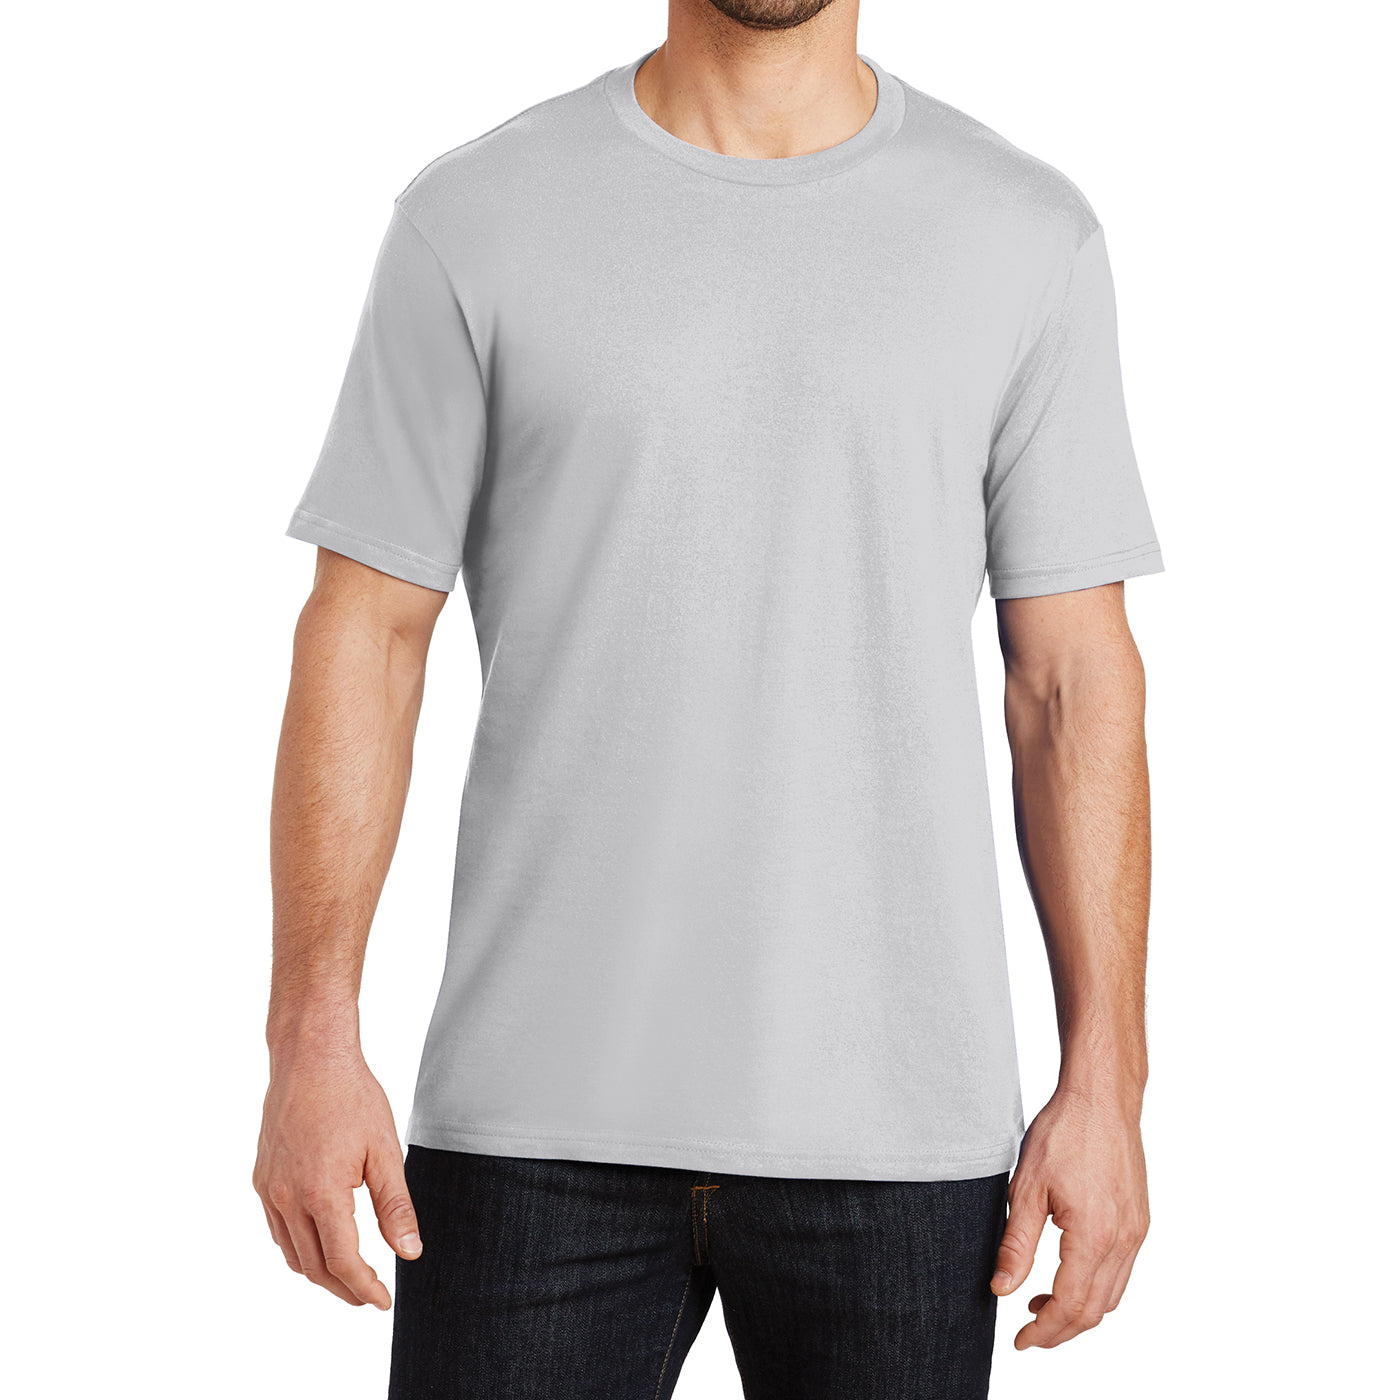 Mens Perfect Weight Crew Tee - Silver - Front